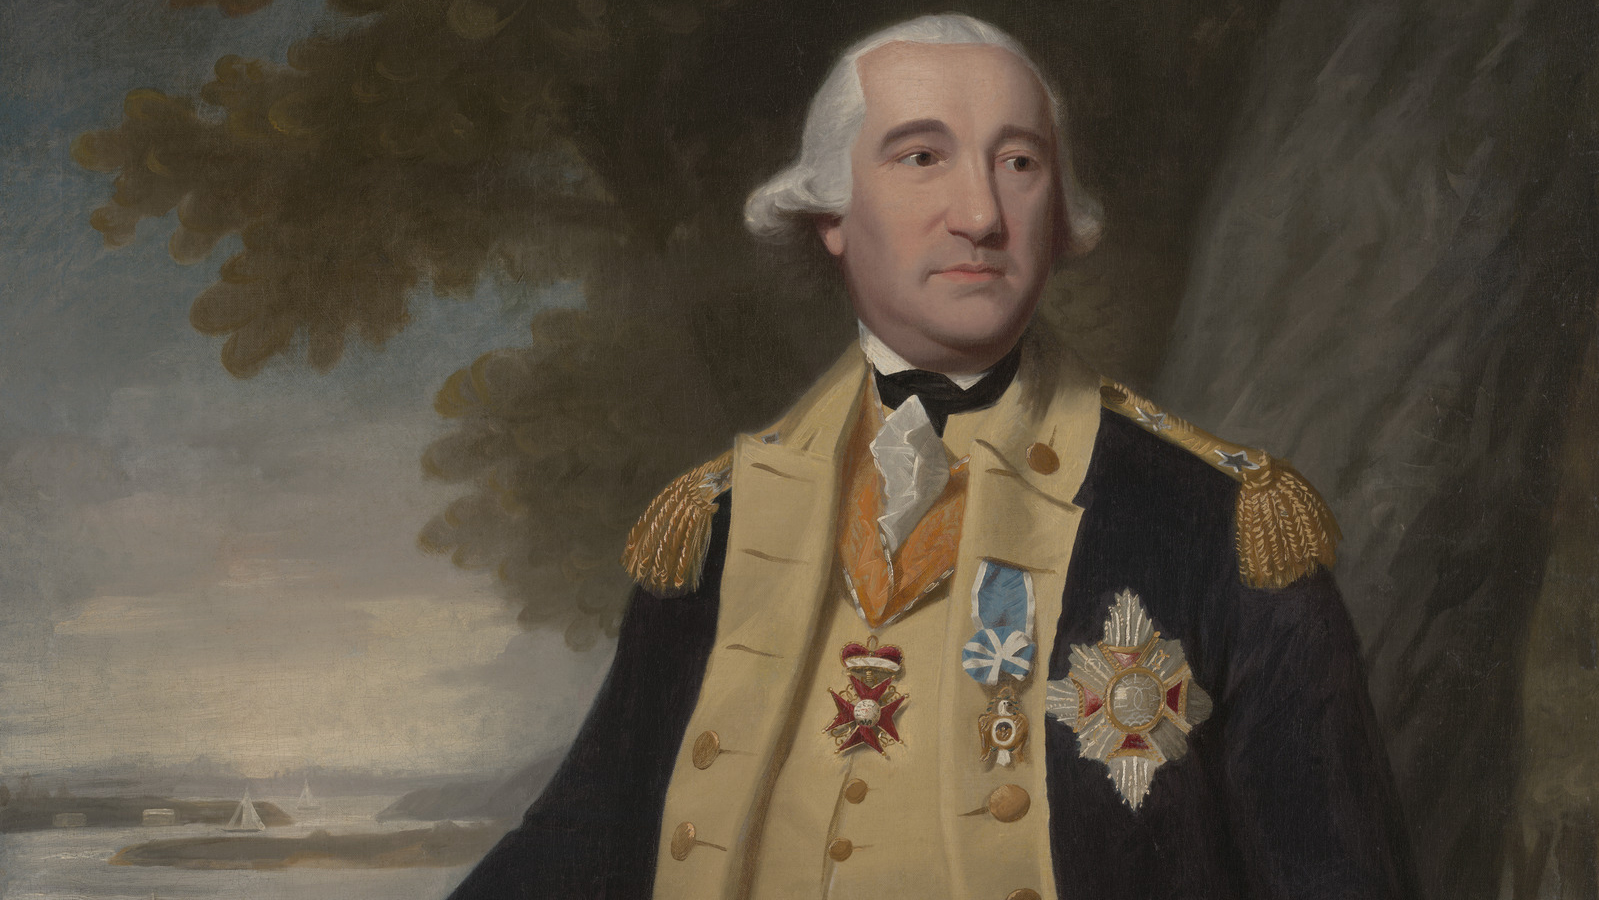 The Revolutionary War Hero Who Was Openly Gay - History-3155